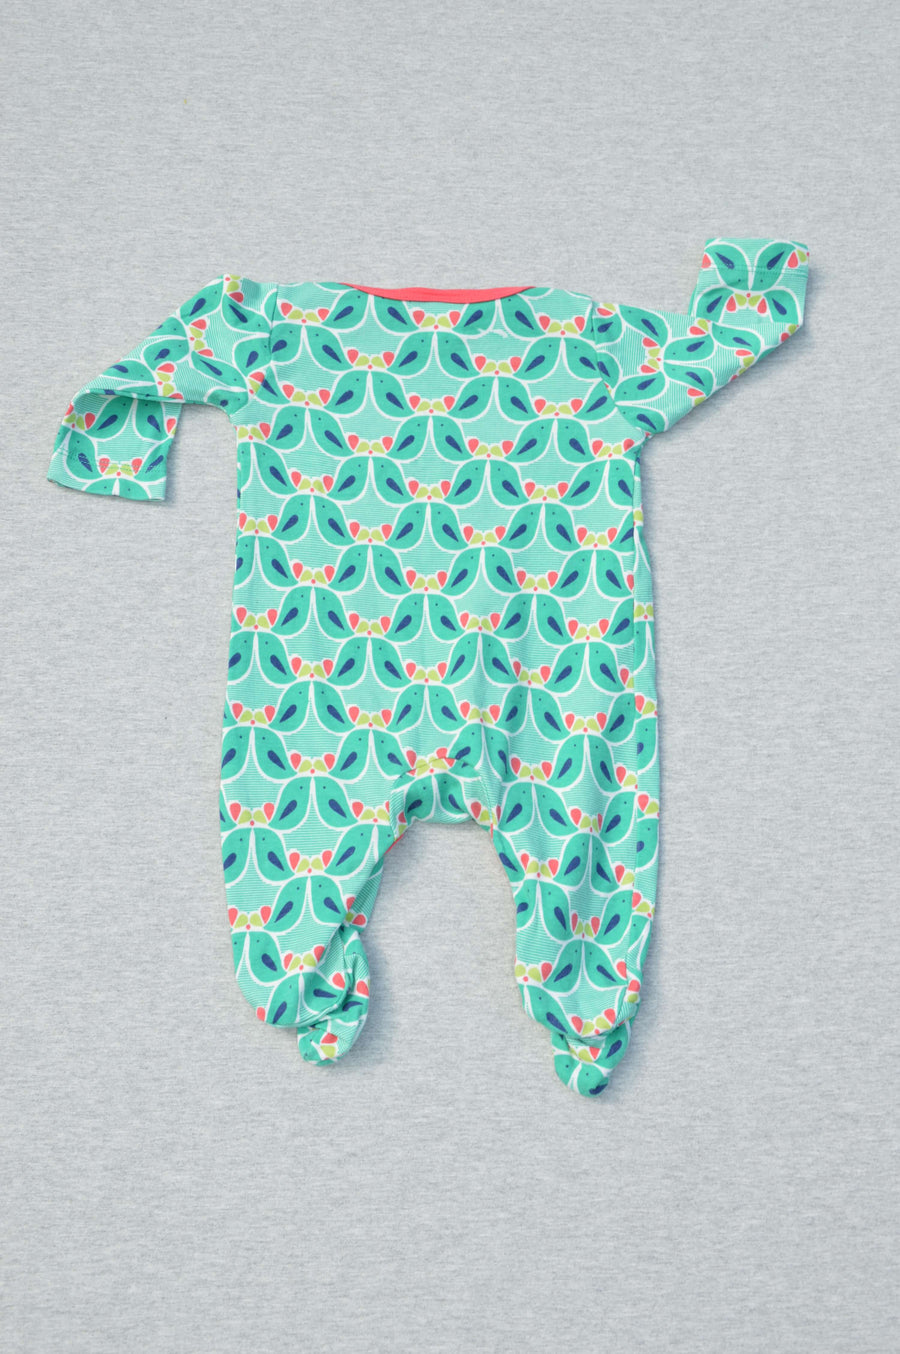 Miniclub - nearly new - green bird patterned onesie, size 0-3m